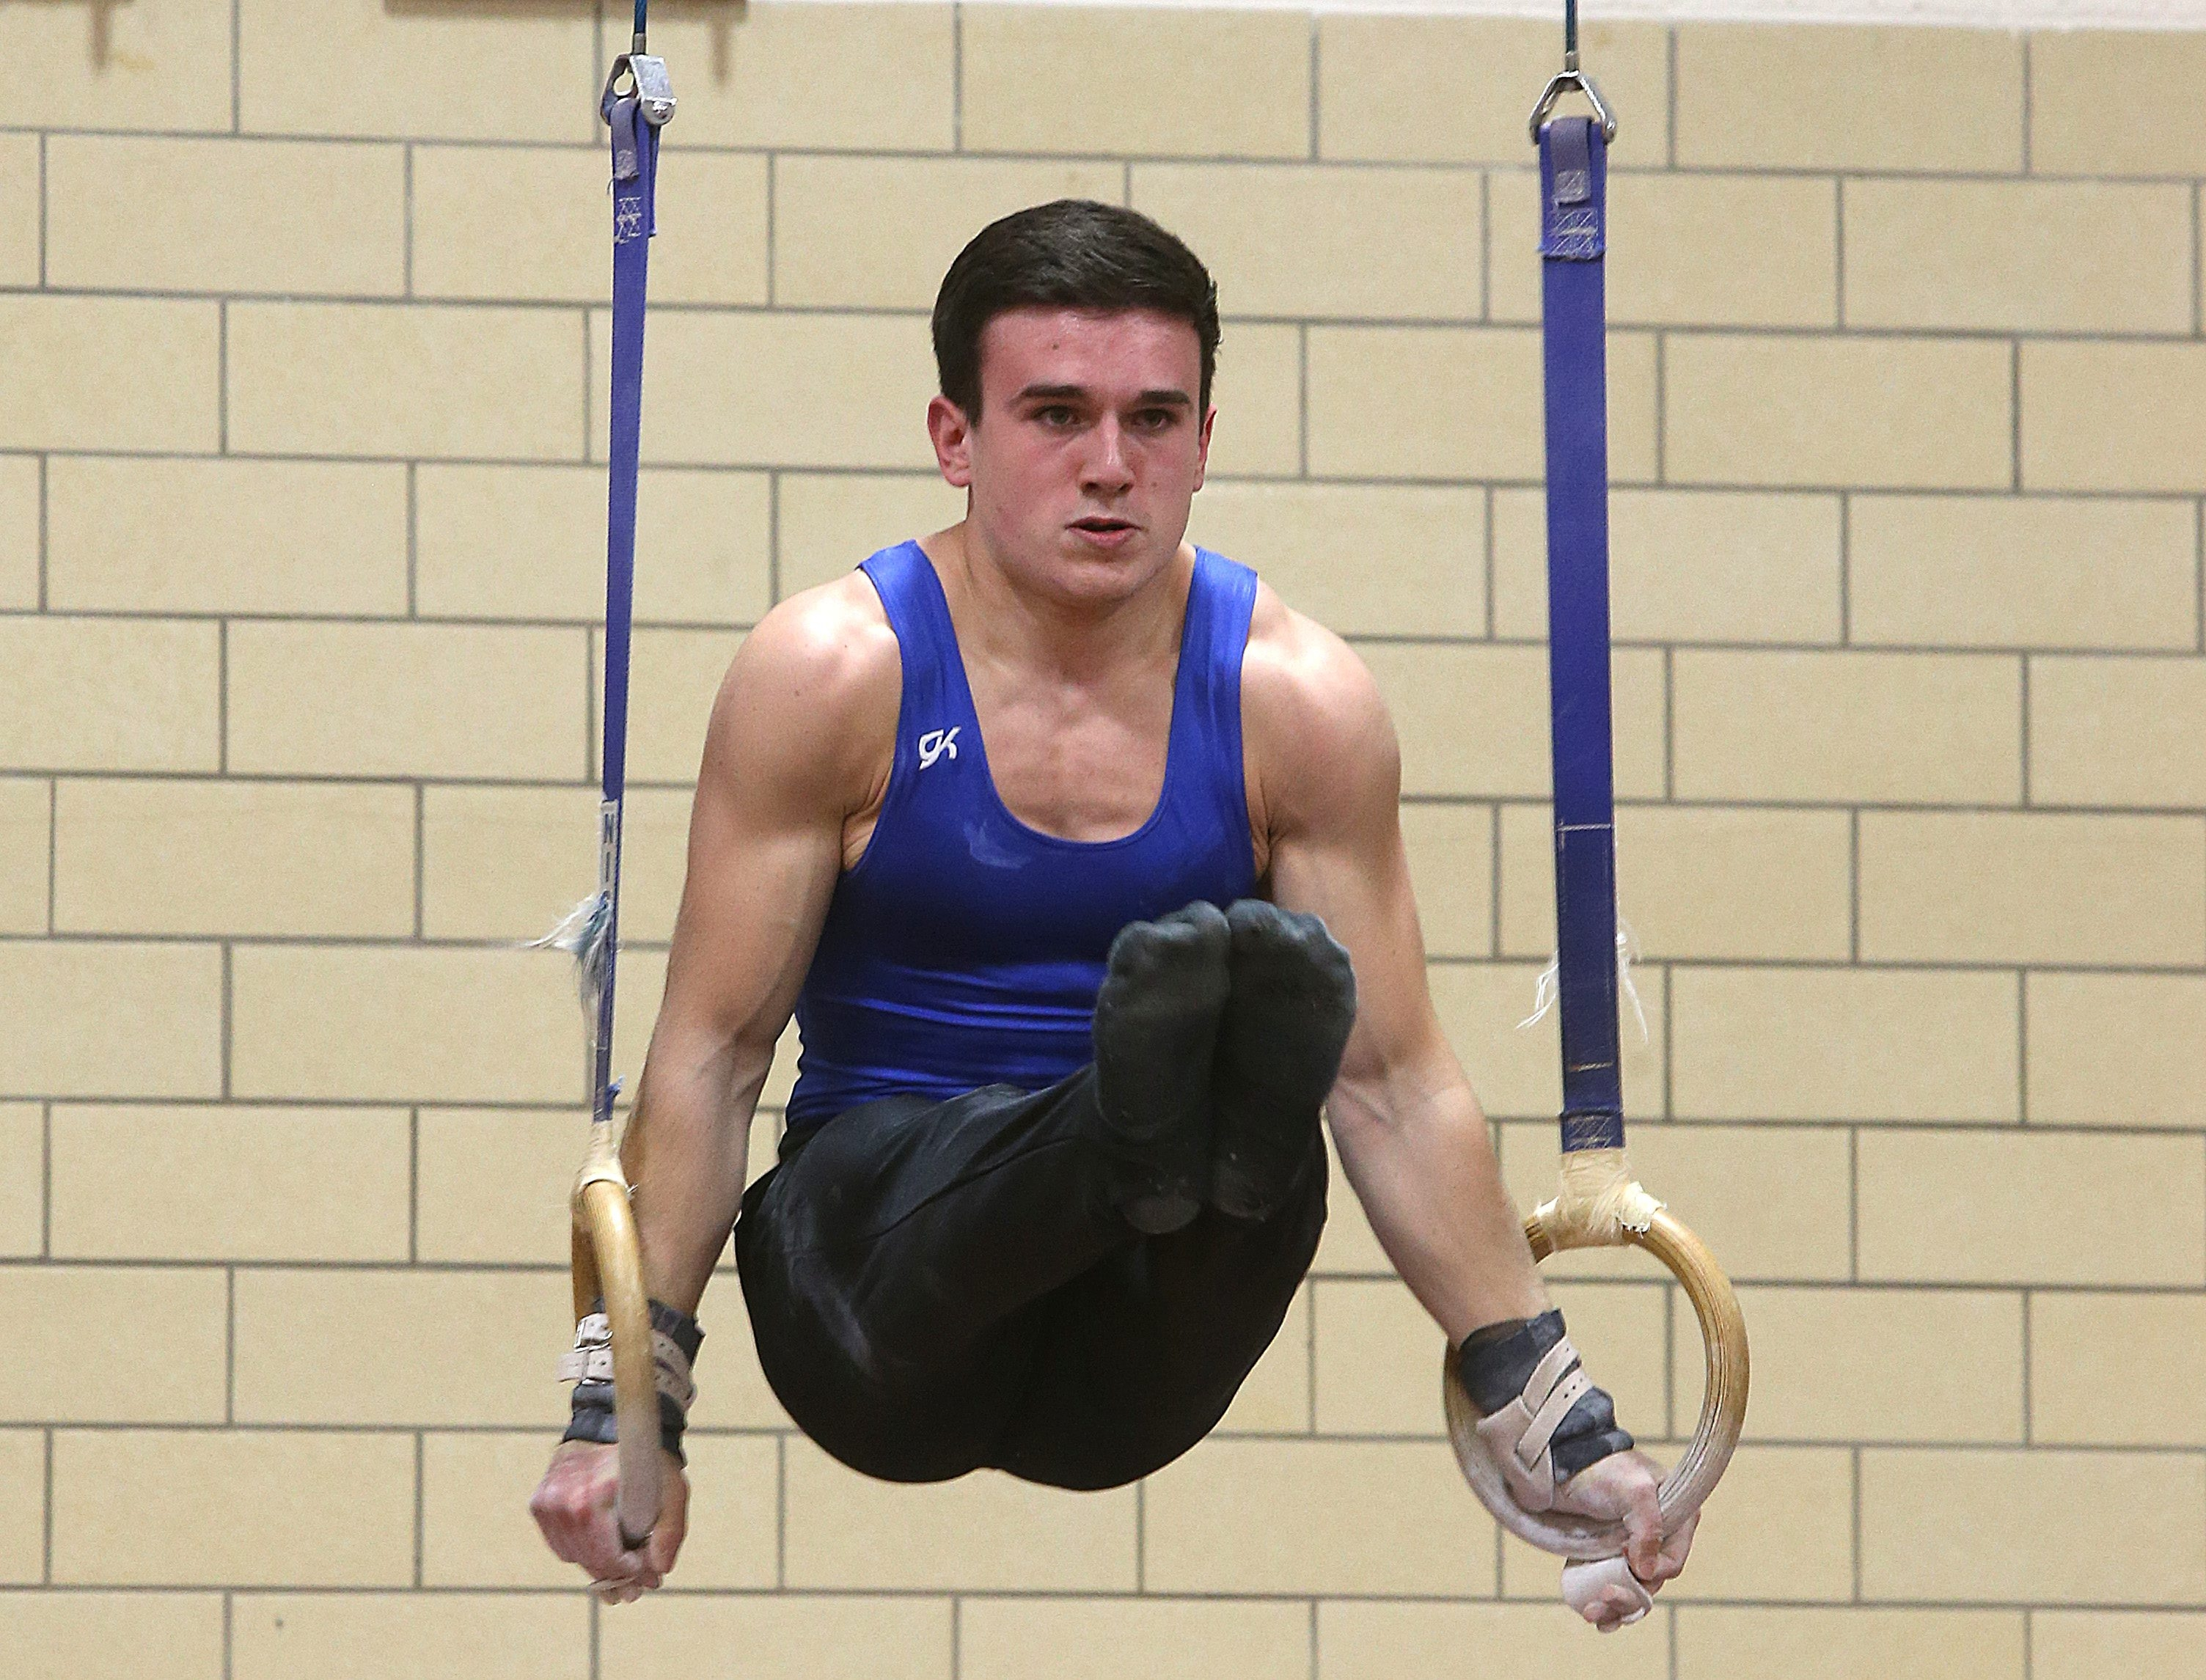 Williamsville South gymnast Noah Roberson tied a Section VI record with a 9.7 on the rings.